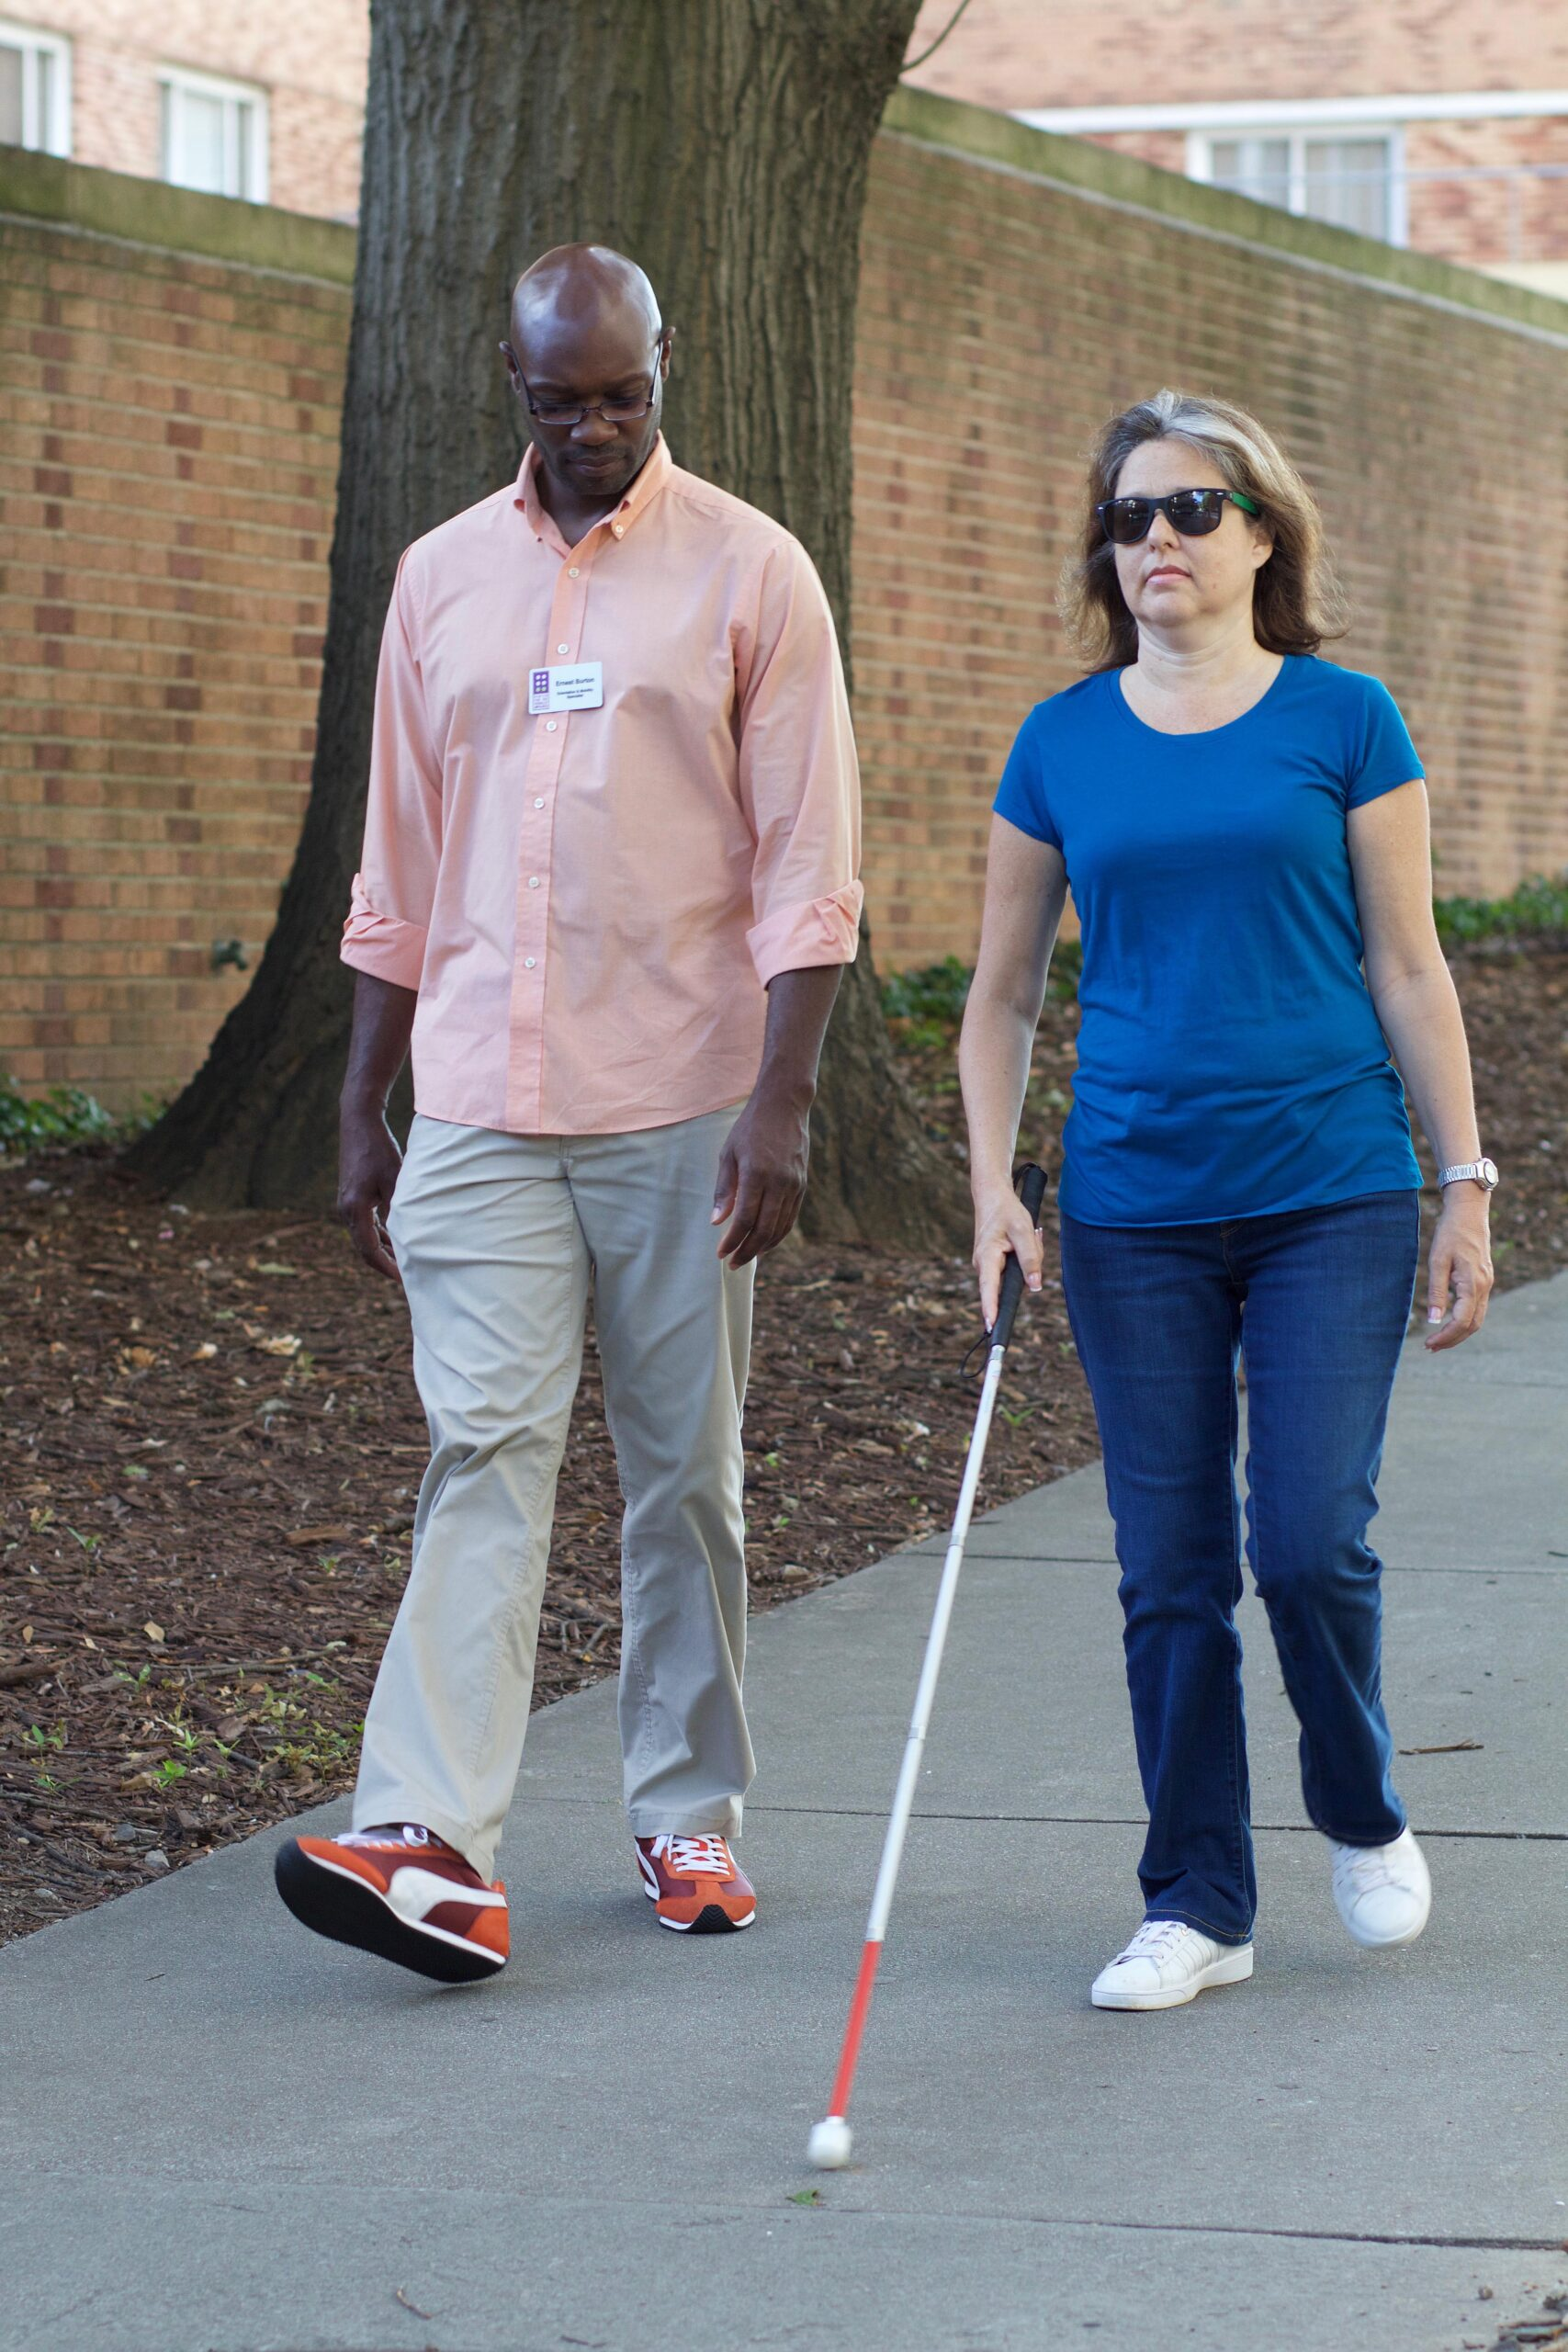 CVI Recognizes White Cane Awareness Day